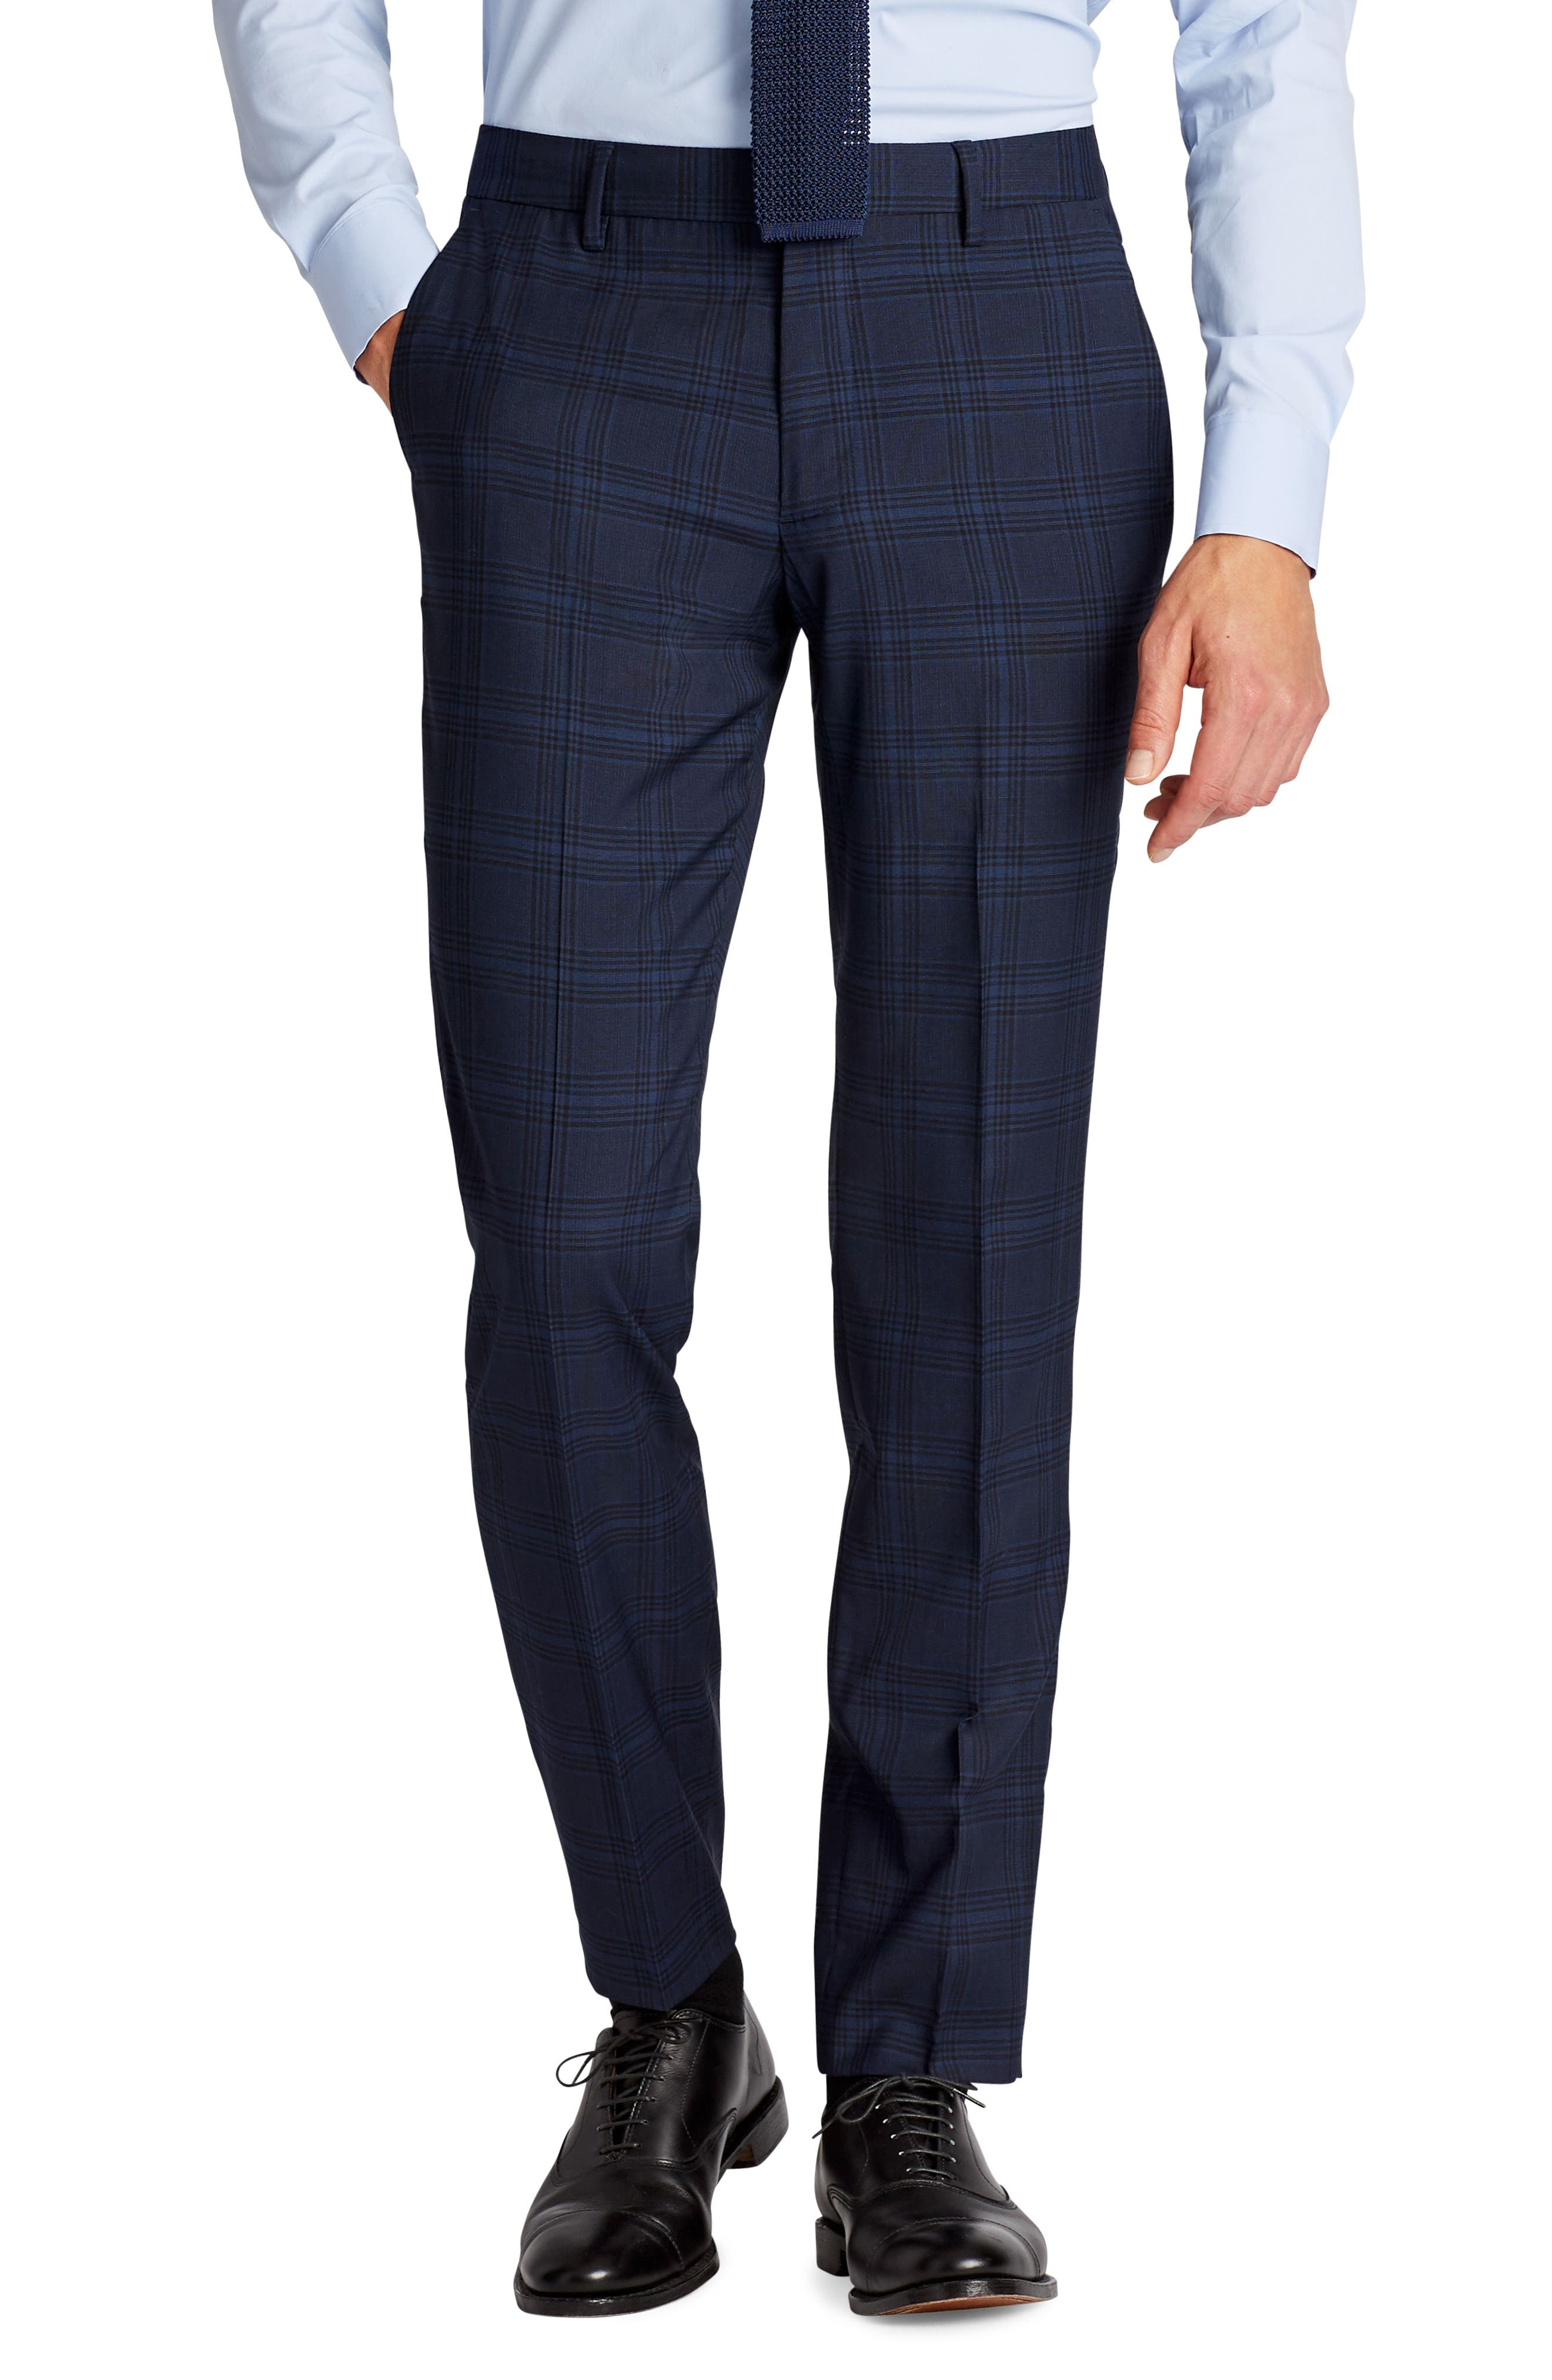 Jetsetter Flat Front Stretch Plaid Wool Blend Trousers,                         Main,                         color, Navy Plaid